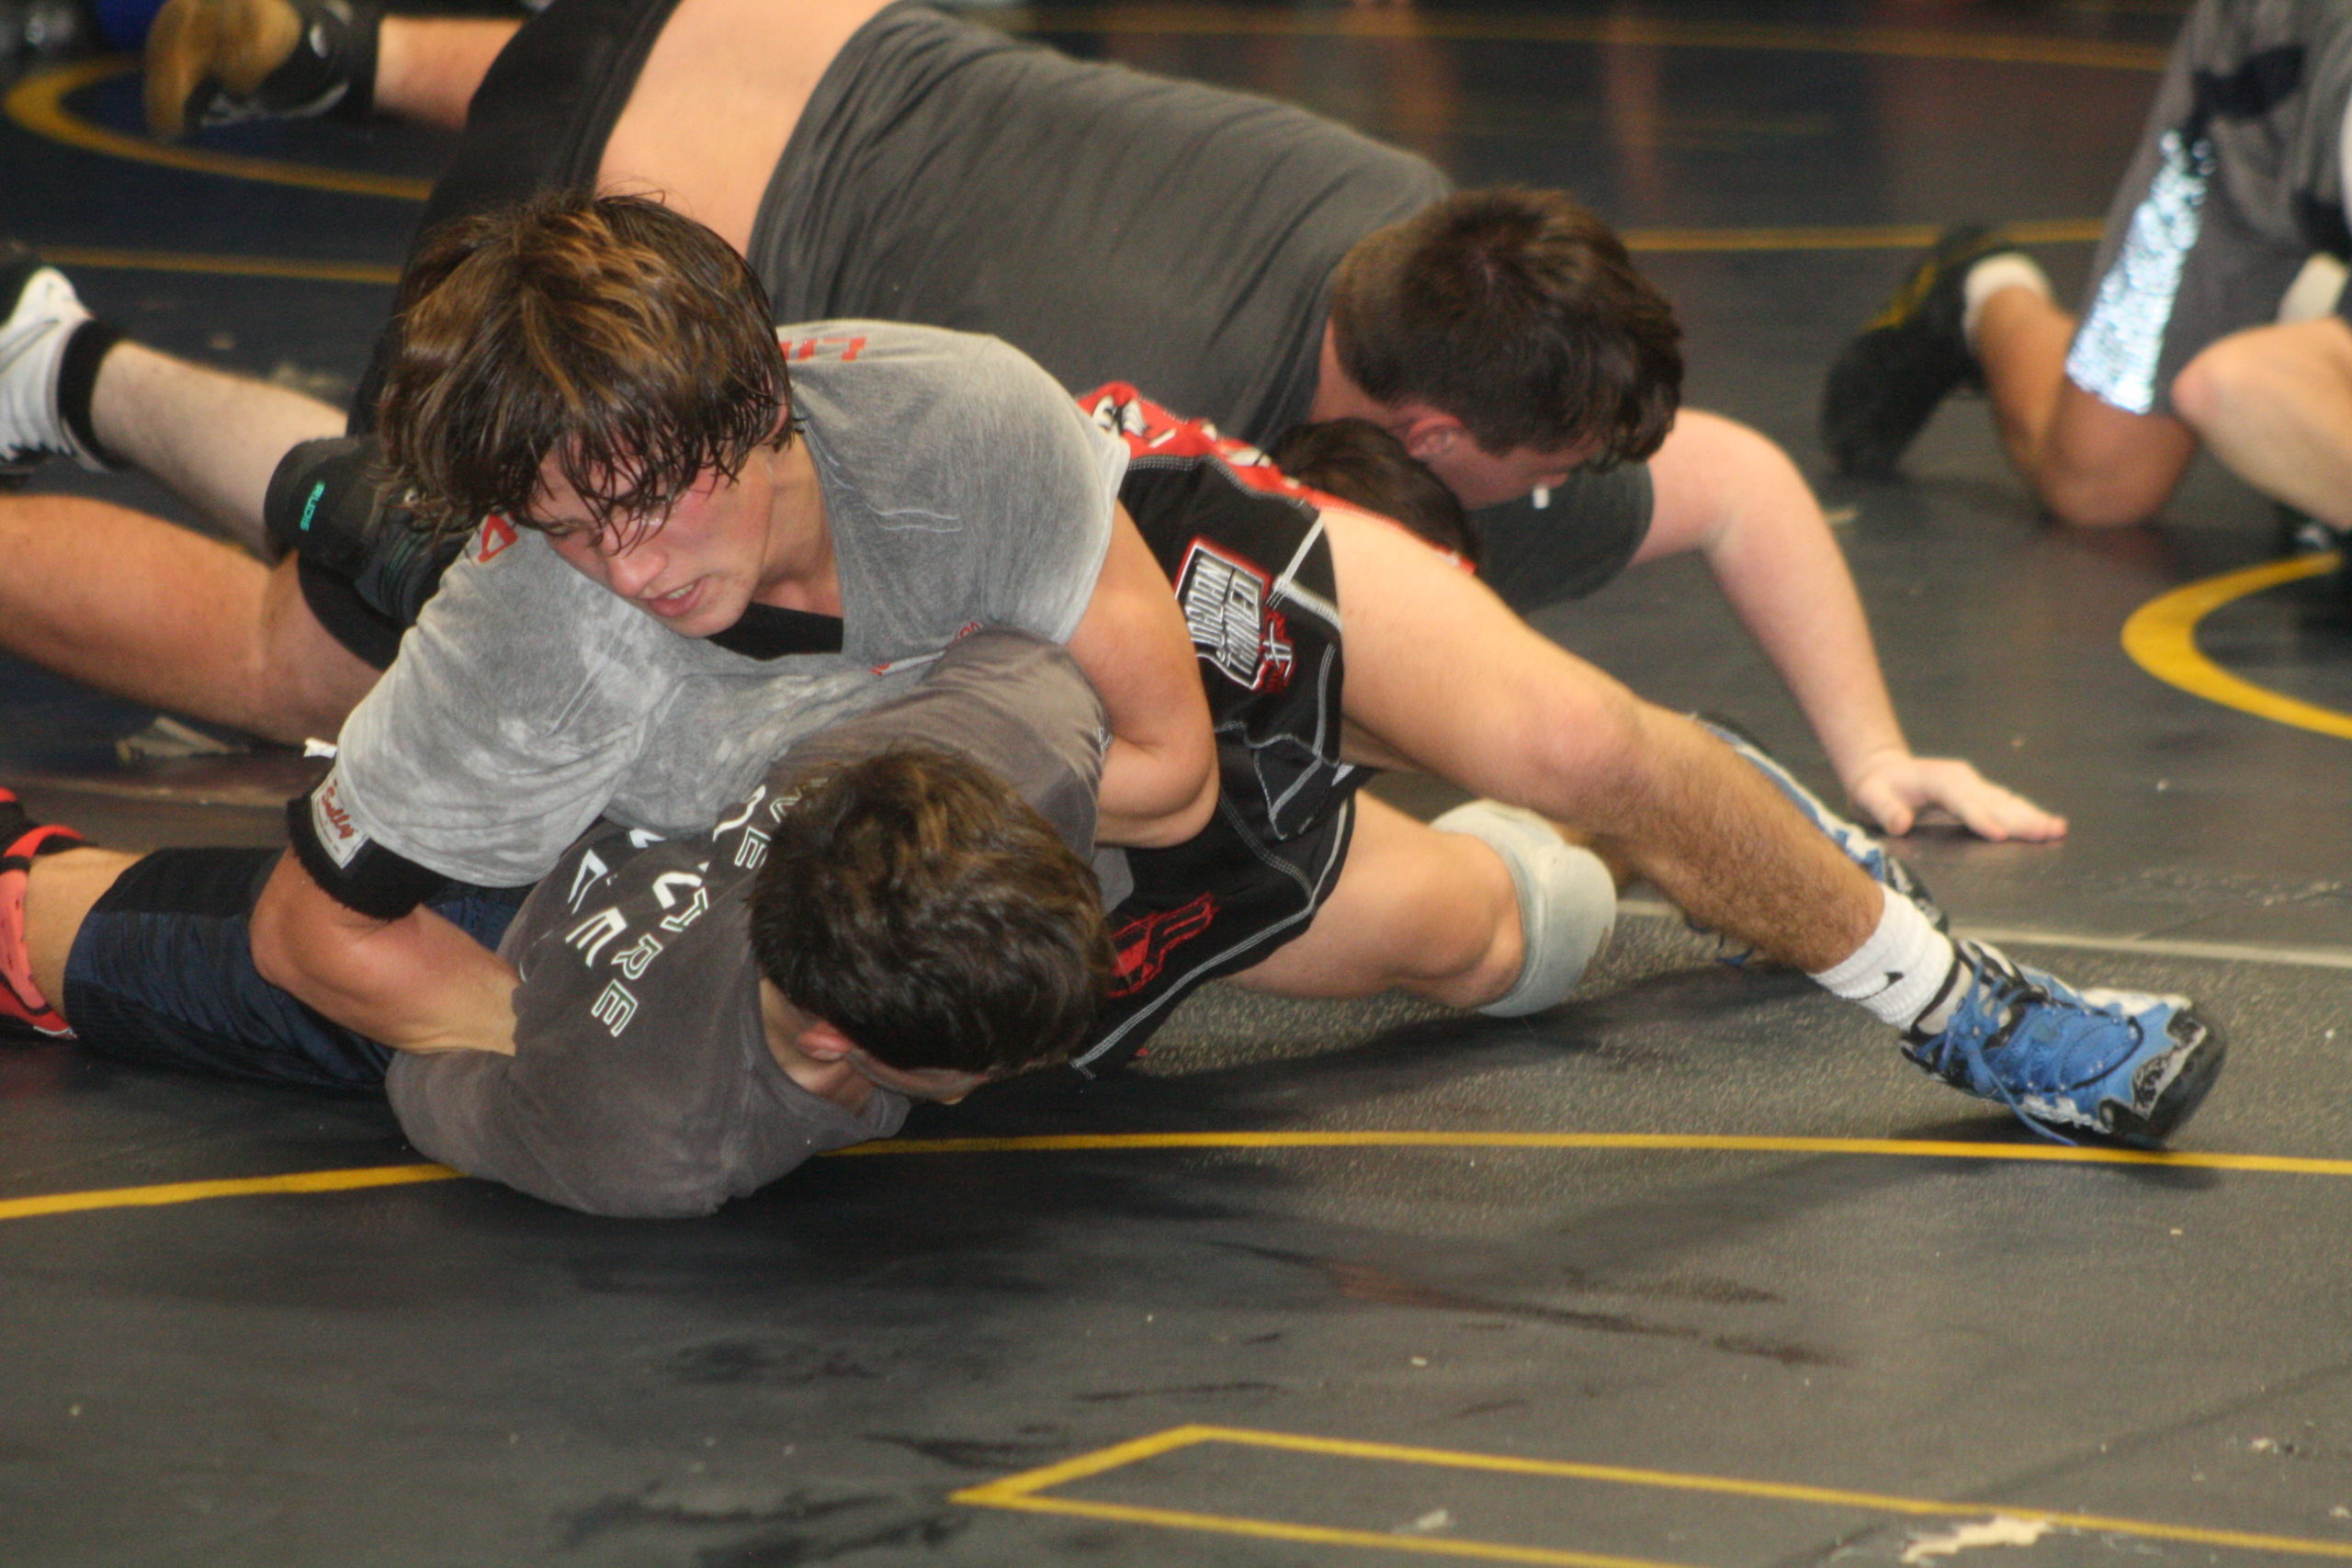 Gavin McIntyre is a key returning wrestler for Westhampton Beach this season.